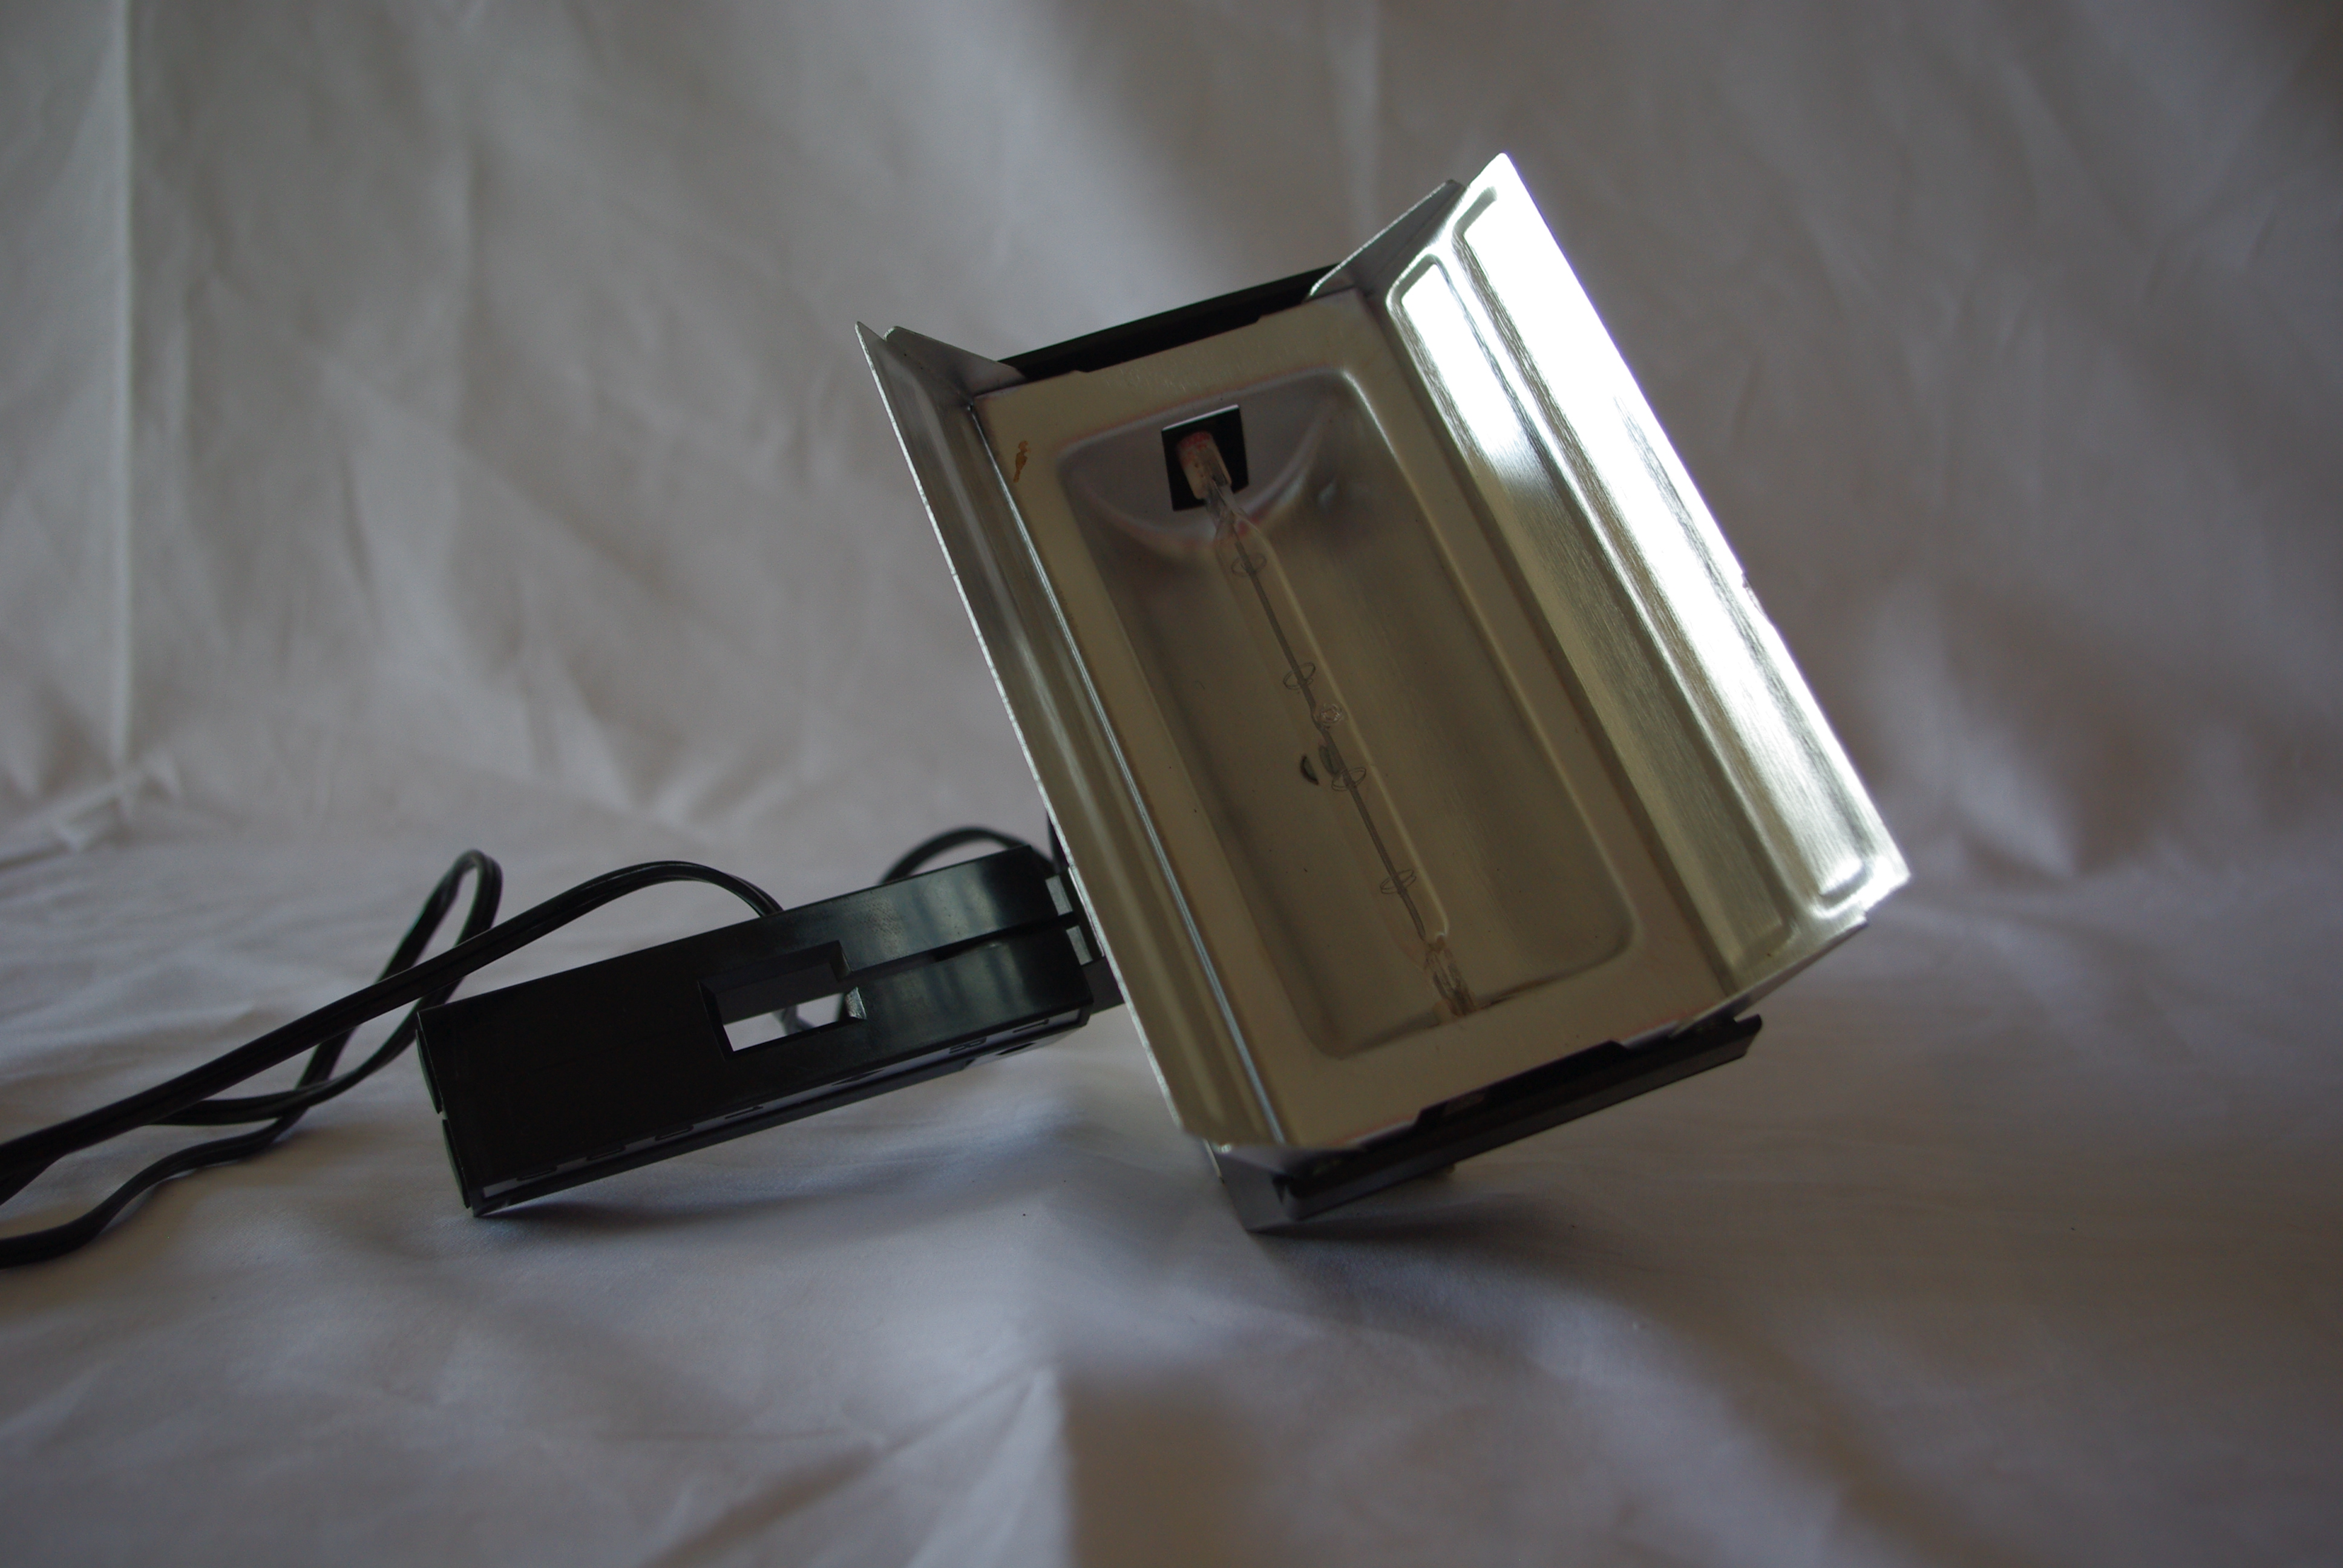 File:Rony video lighting equipment (3).JPG - Wikimedia Commons